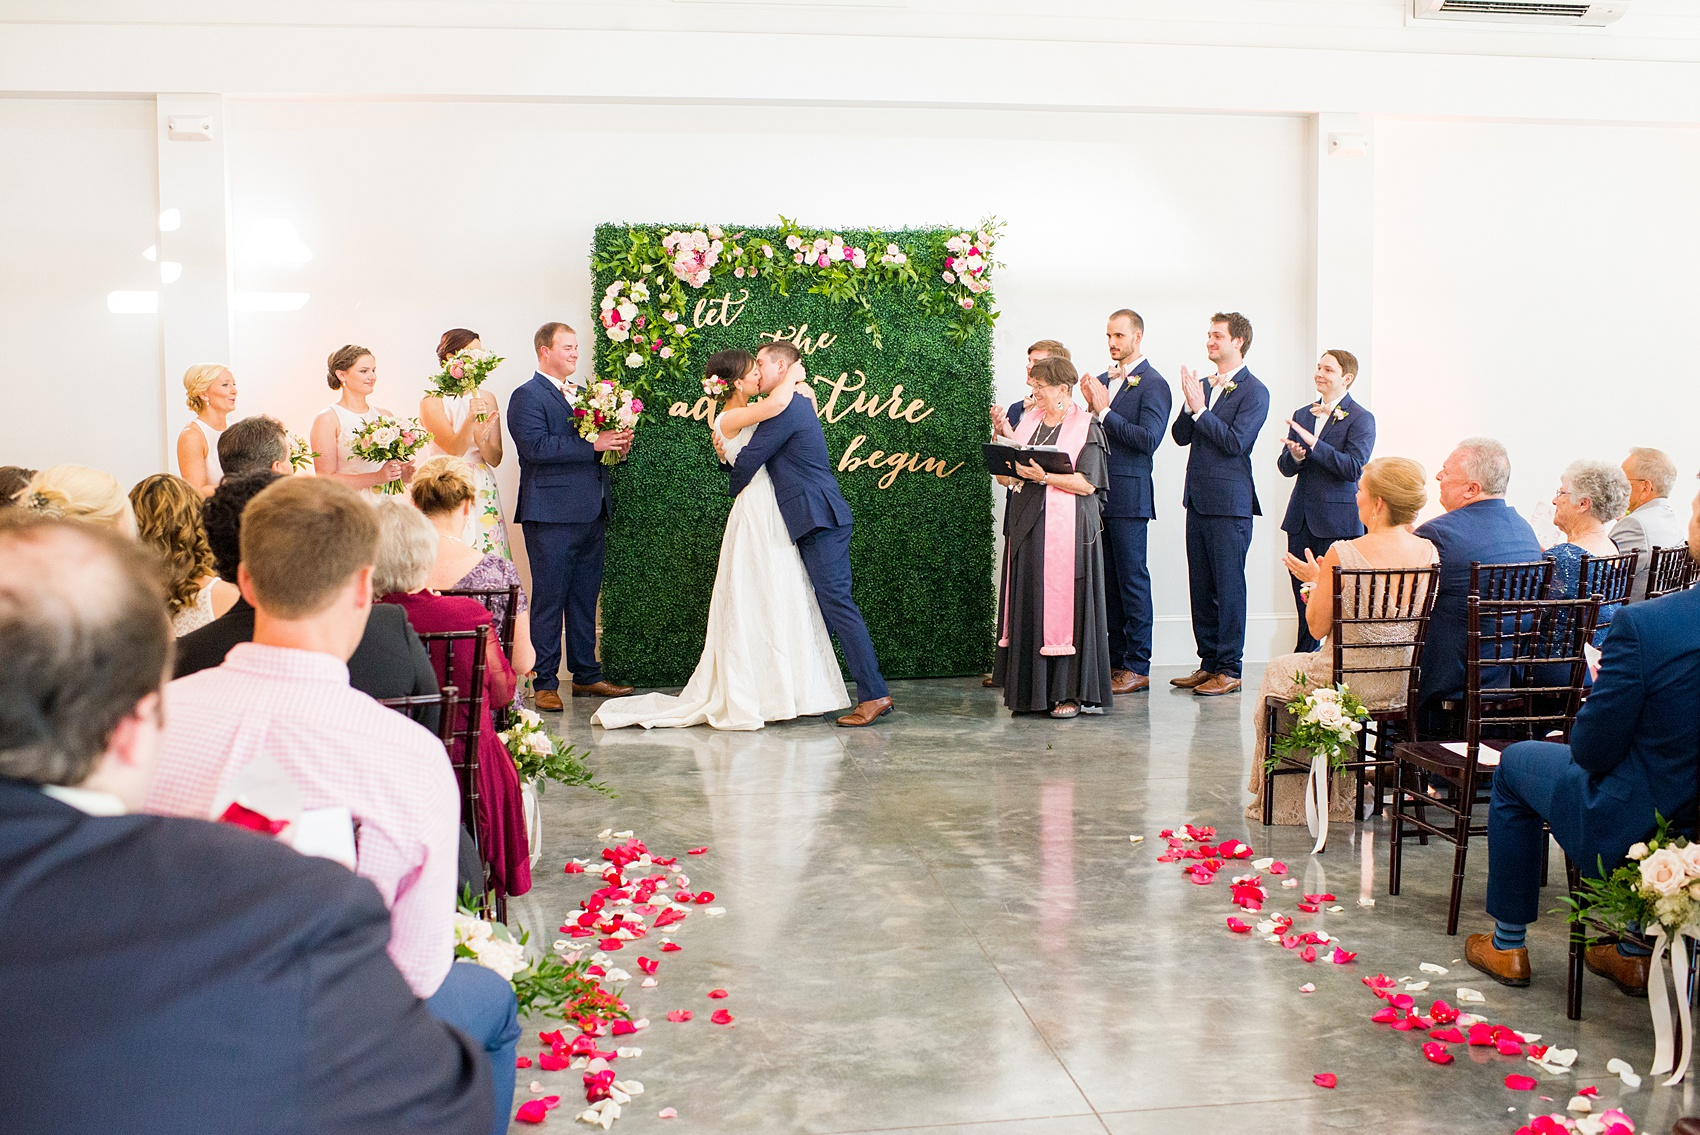 Mikkel Paige Photography pictures from a wedding at Merrimon-Wynne House in Raleigh, NC. Photo of the bride and groom's first kiss after their ceremony with a greenery backdrop.